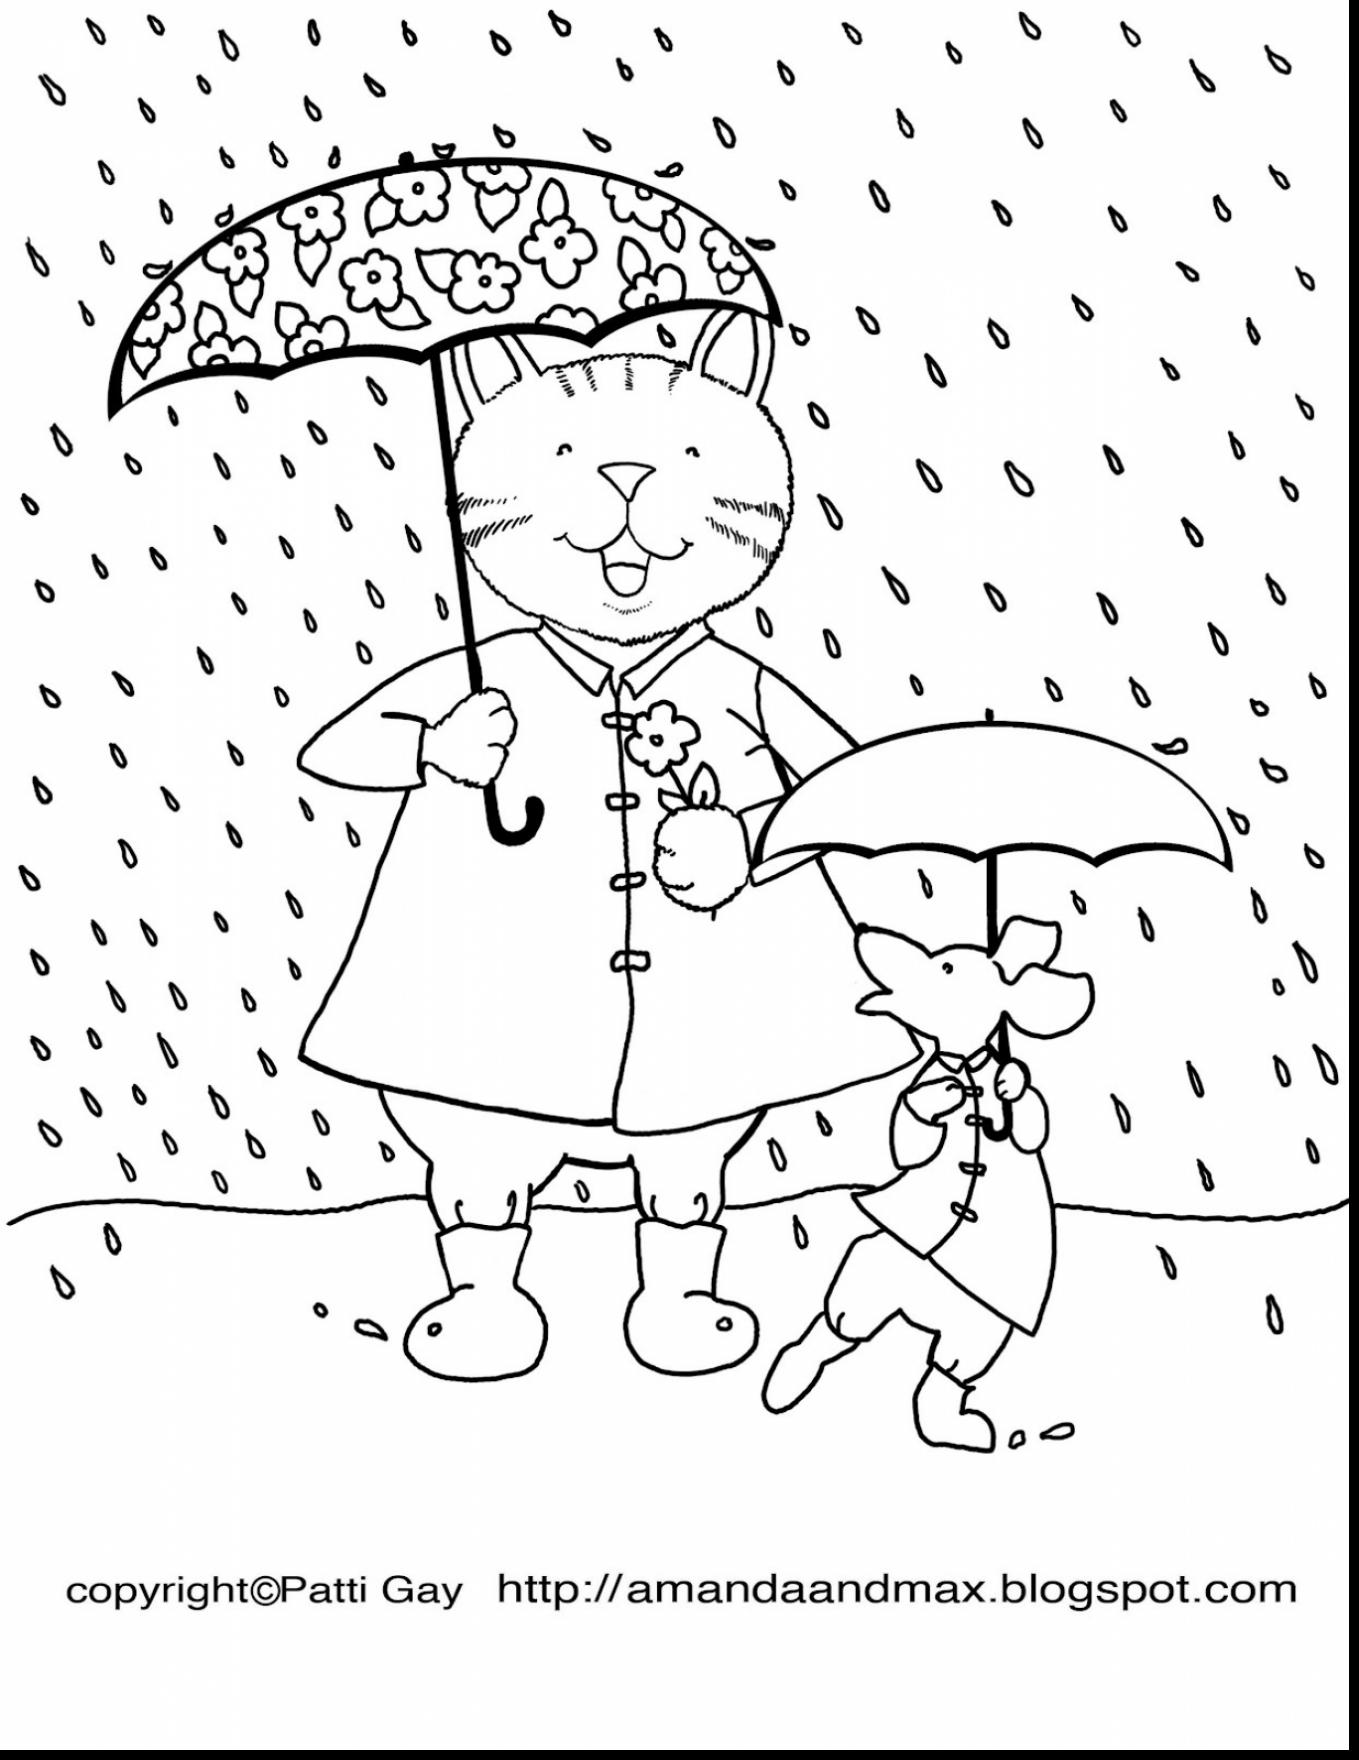 April showers clipart black and white transparent download good april showers clip art black and white with rainy day ... transparent download